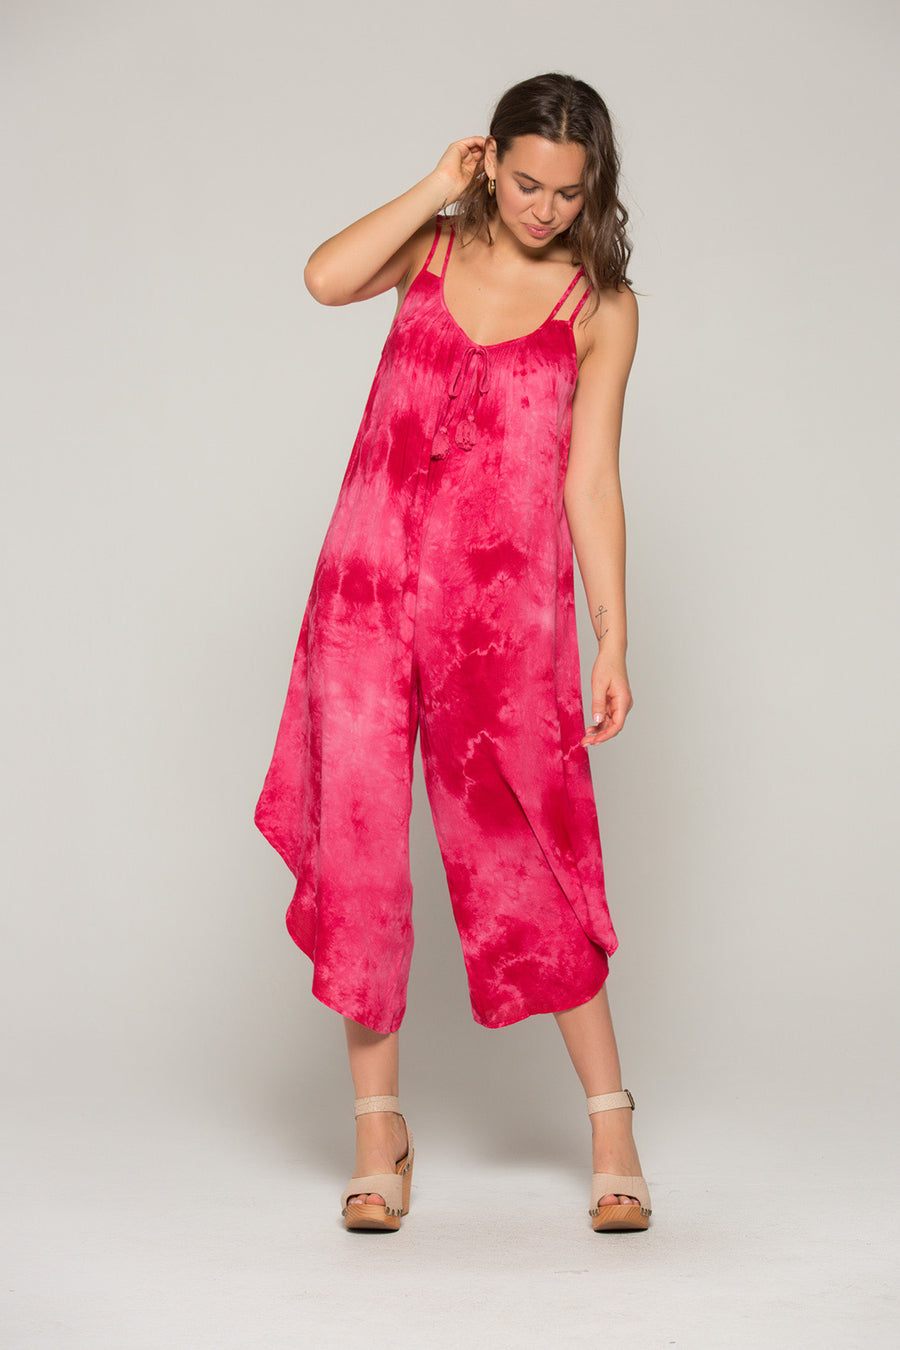 Devon Red Tie Dye Jumpsuit Master